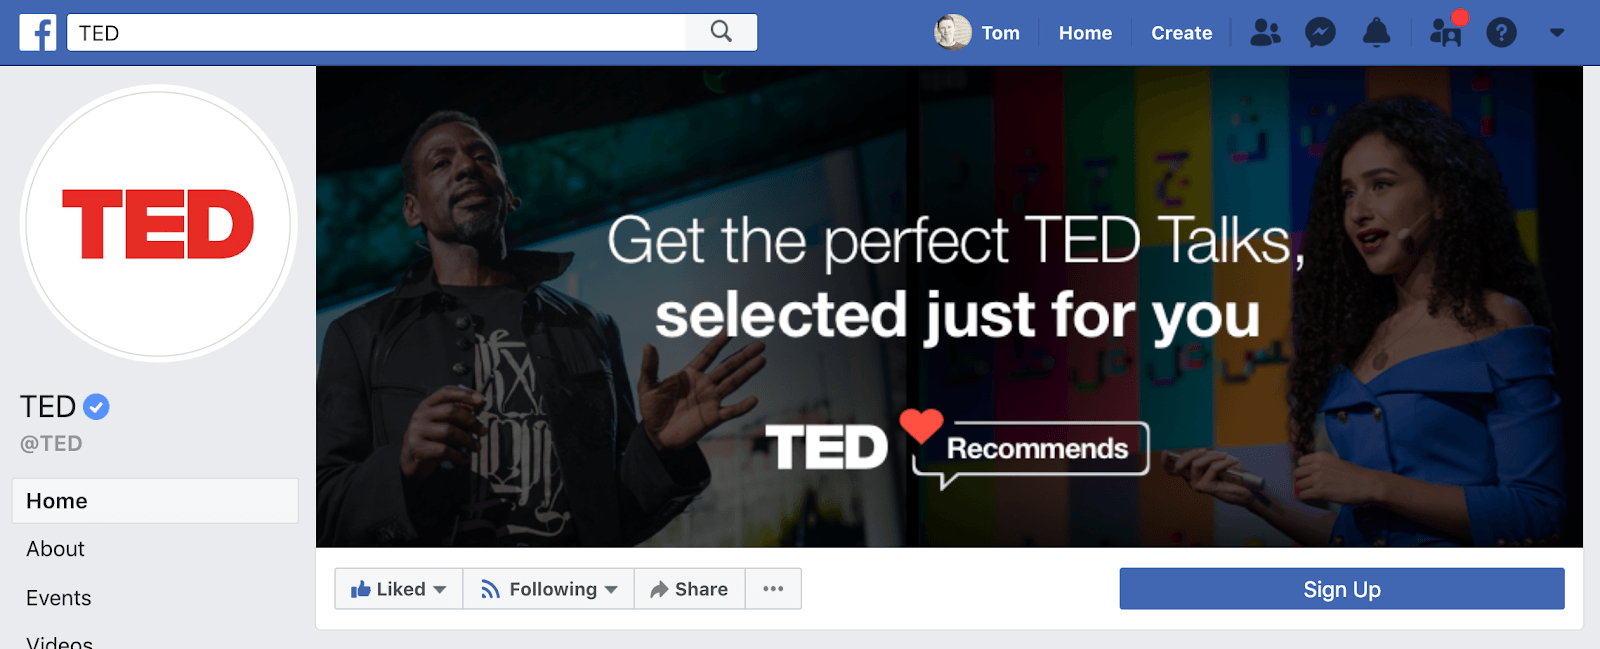 Ted Talks Facebook Page